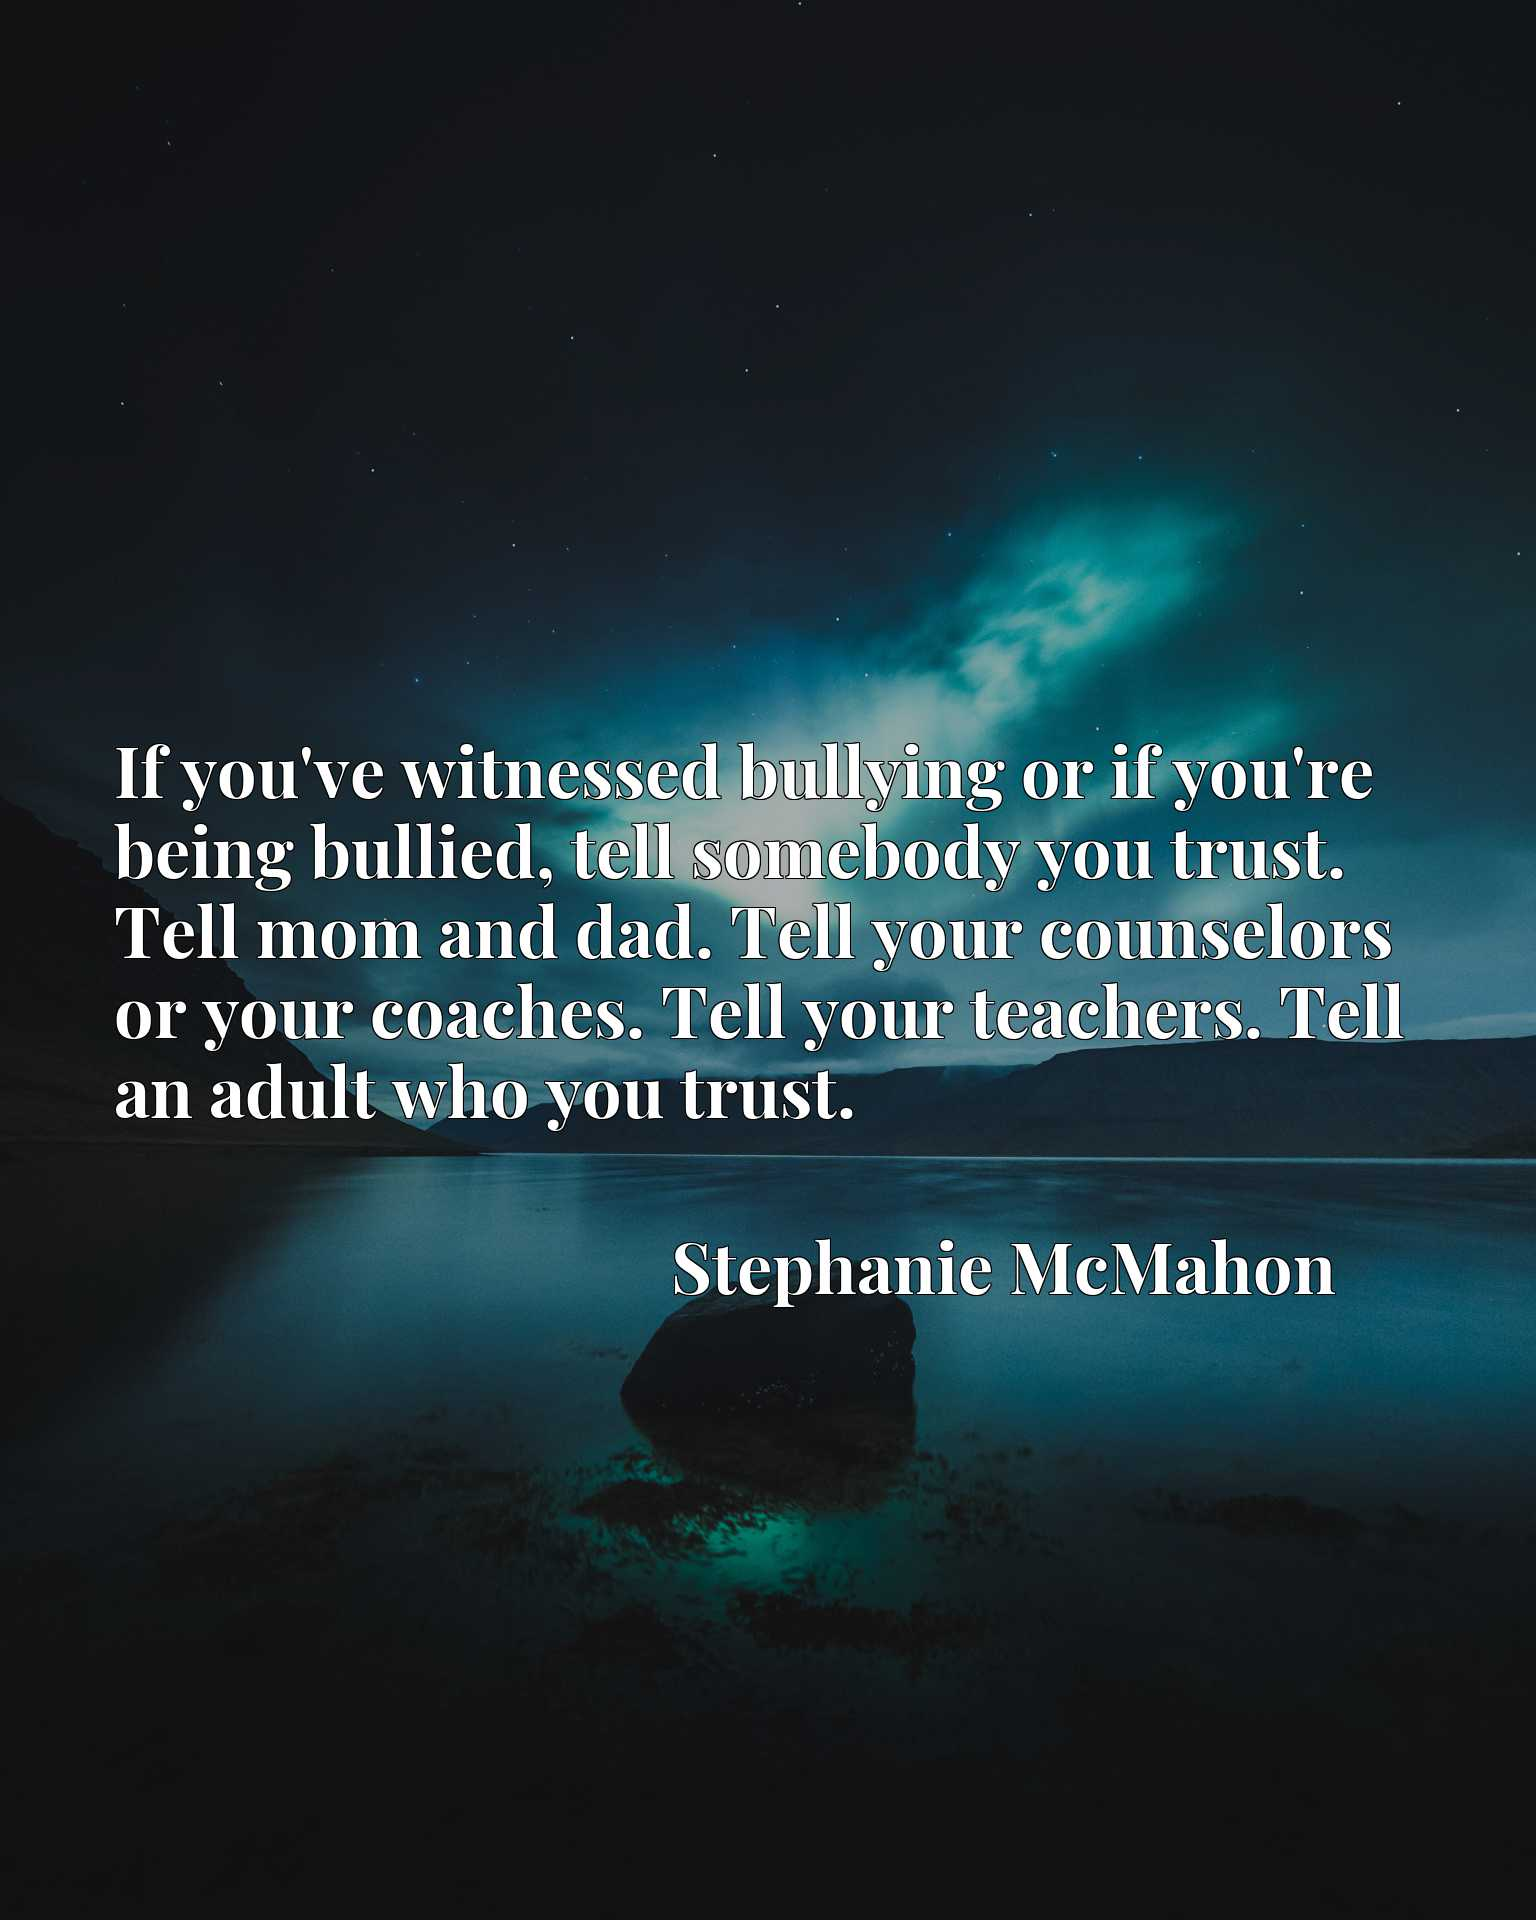 If you've witnessed bullying or if you're being bullied, tell somebody you trust. Tell mom and dad. Tell your counselors or your coaches. Tell your teachers. Tell an adult who you trust.